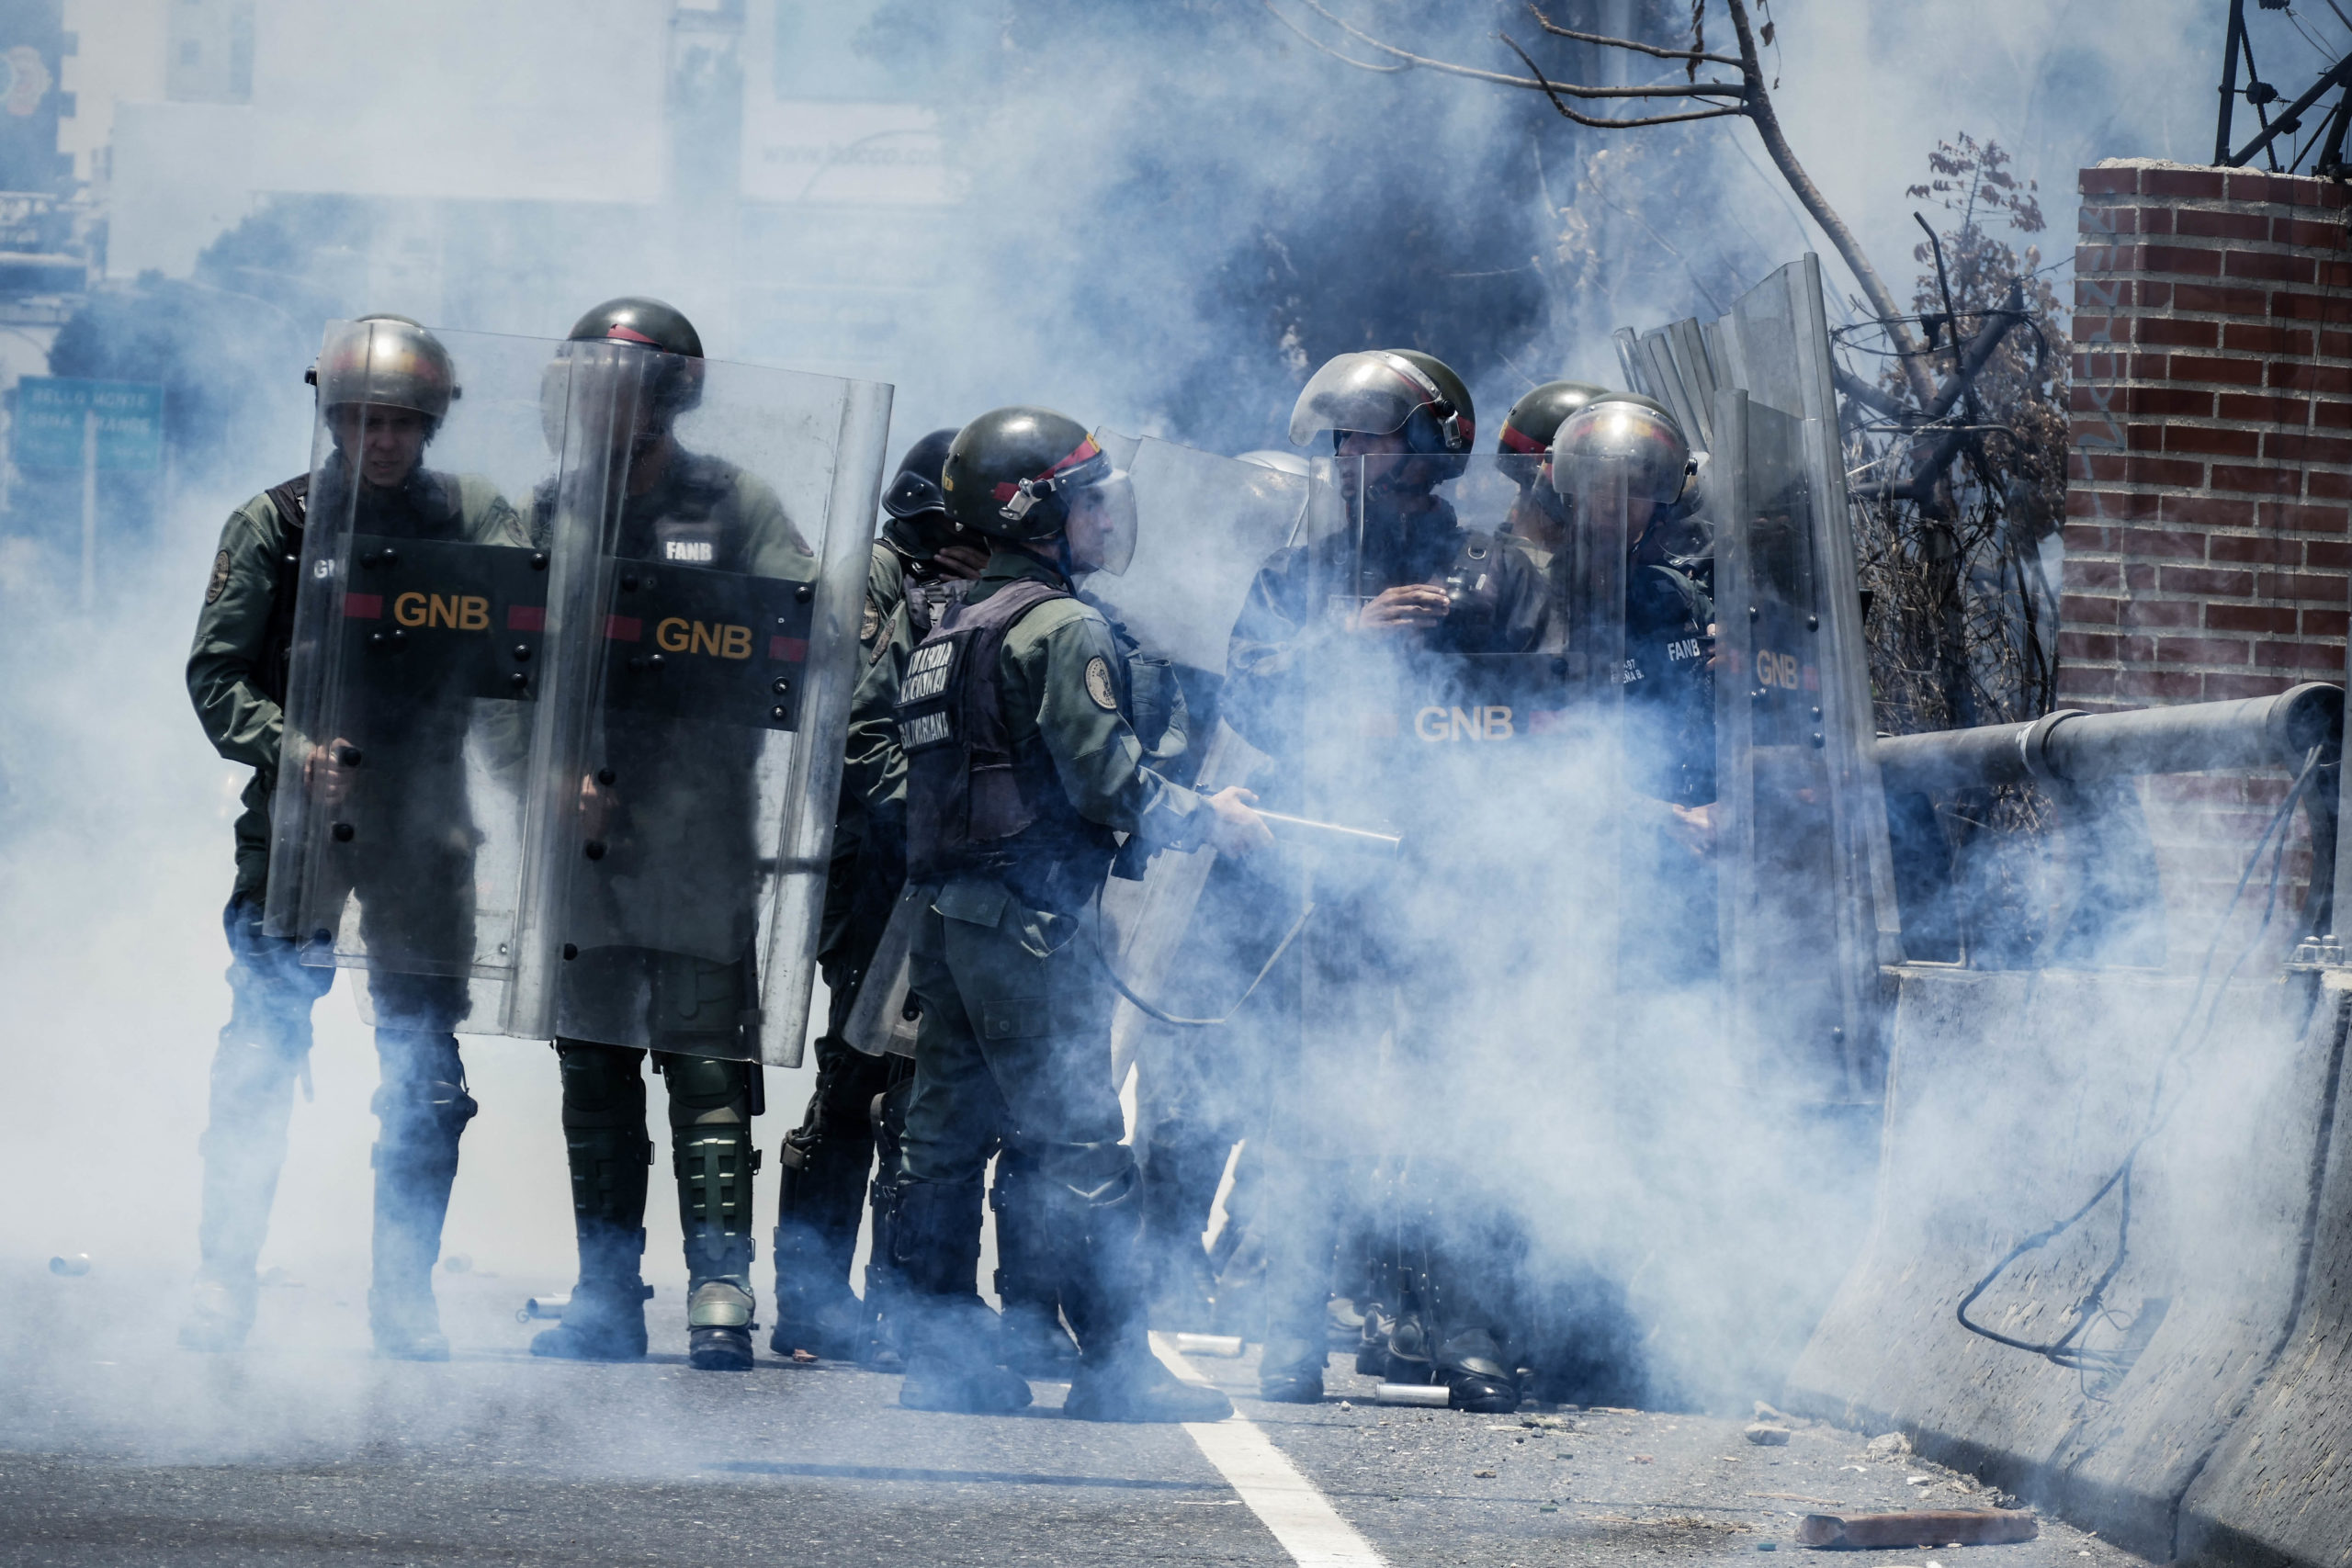 Toxic trade in tear gas fuels police abuses globally